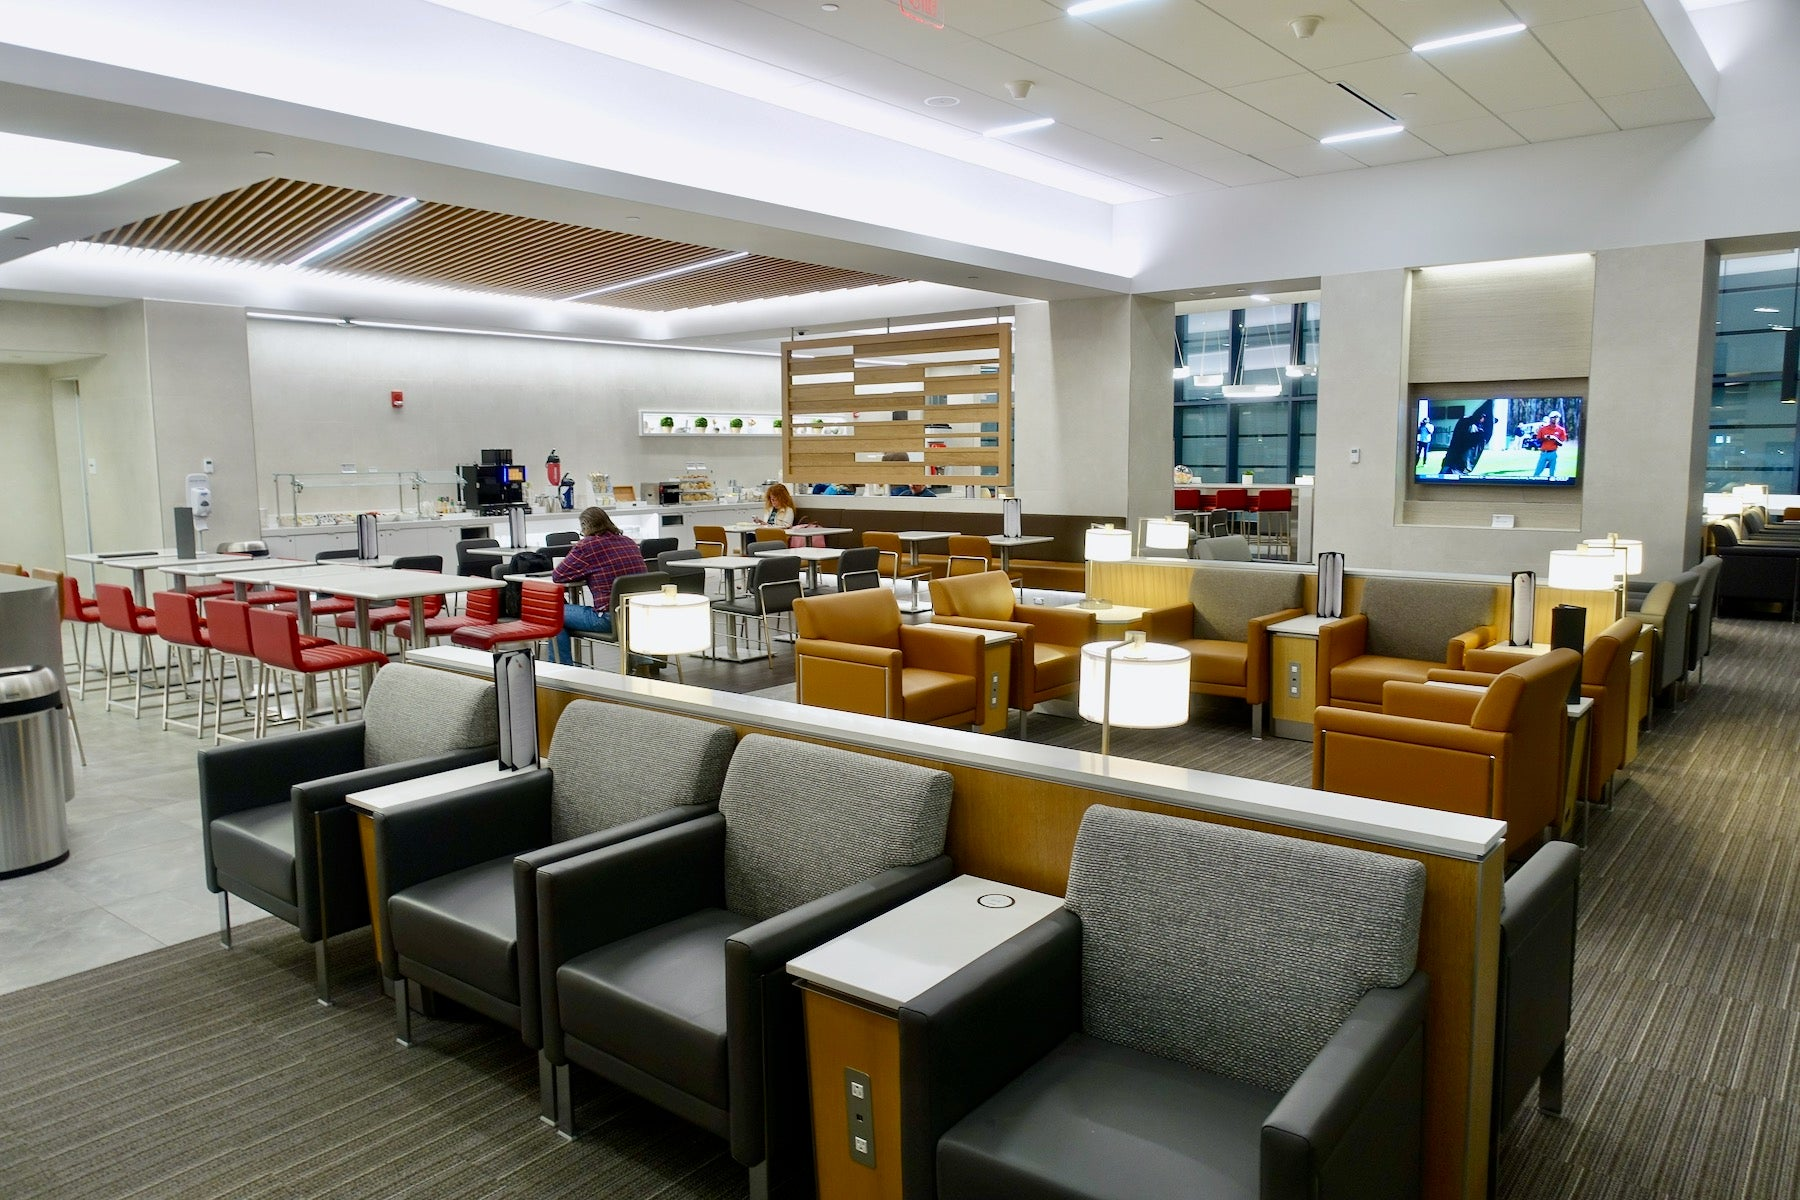 American Airlines extends lounge access to more passengers and streamlines rules